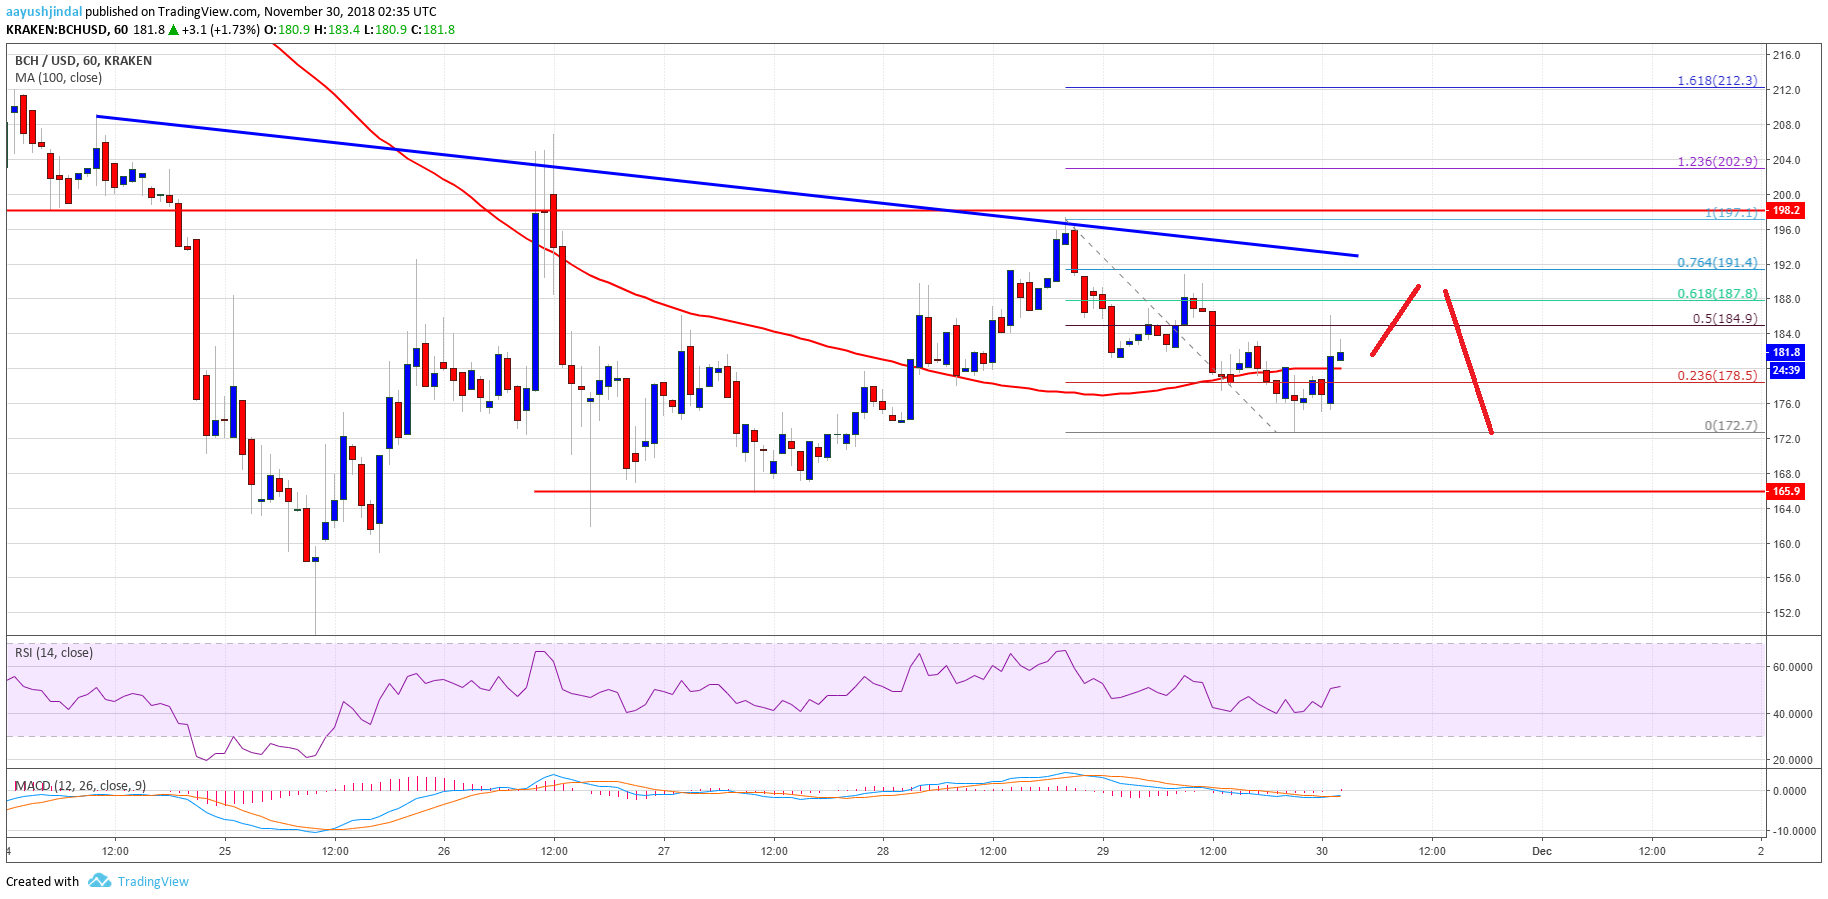 Bitcoin Cash Price Analysis: BCH/USD Consolidating Below $200 2